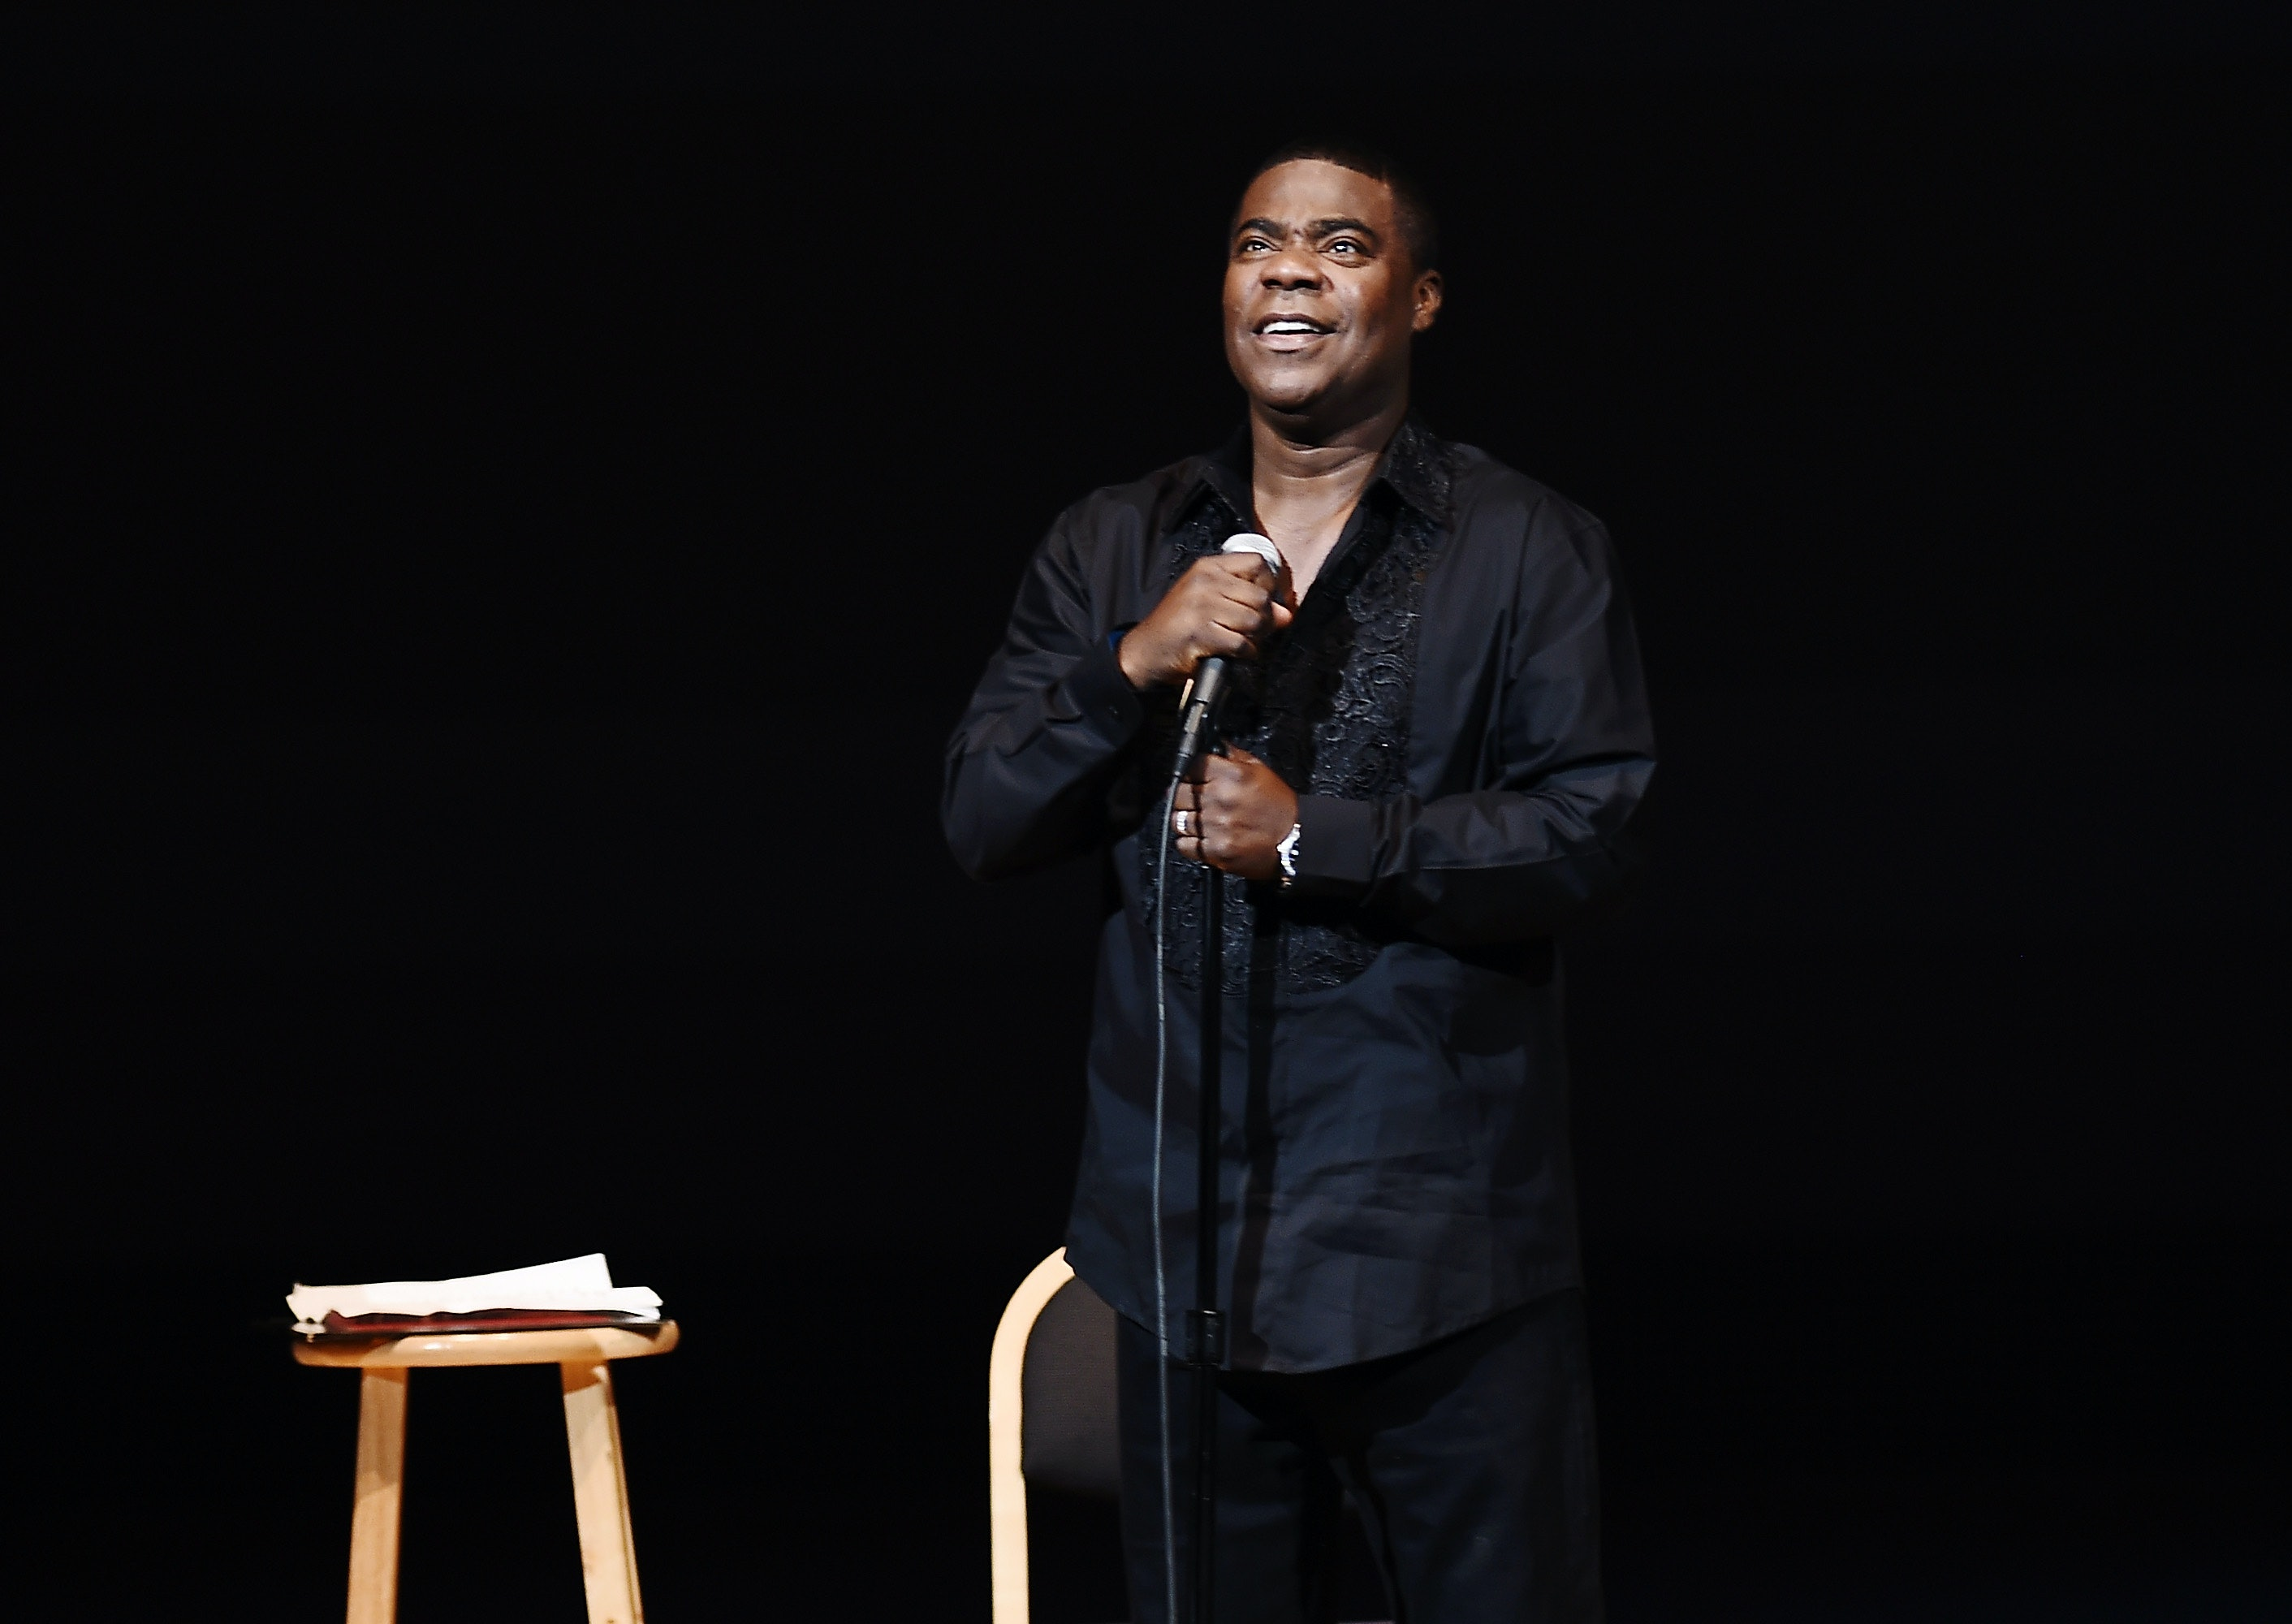 Tracy Morgan is the latest comedian to earn a Netflix stand-up special